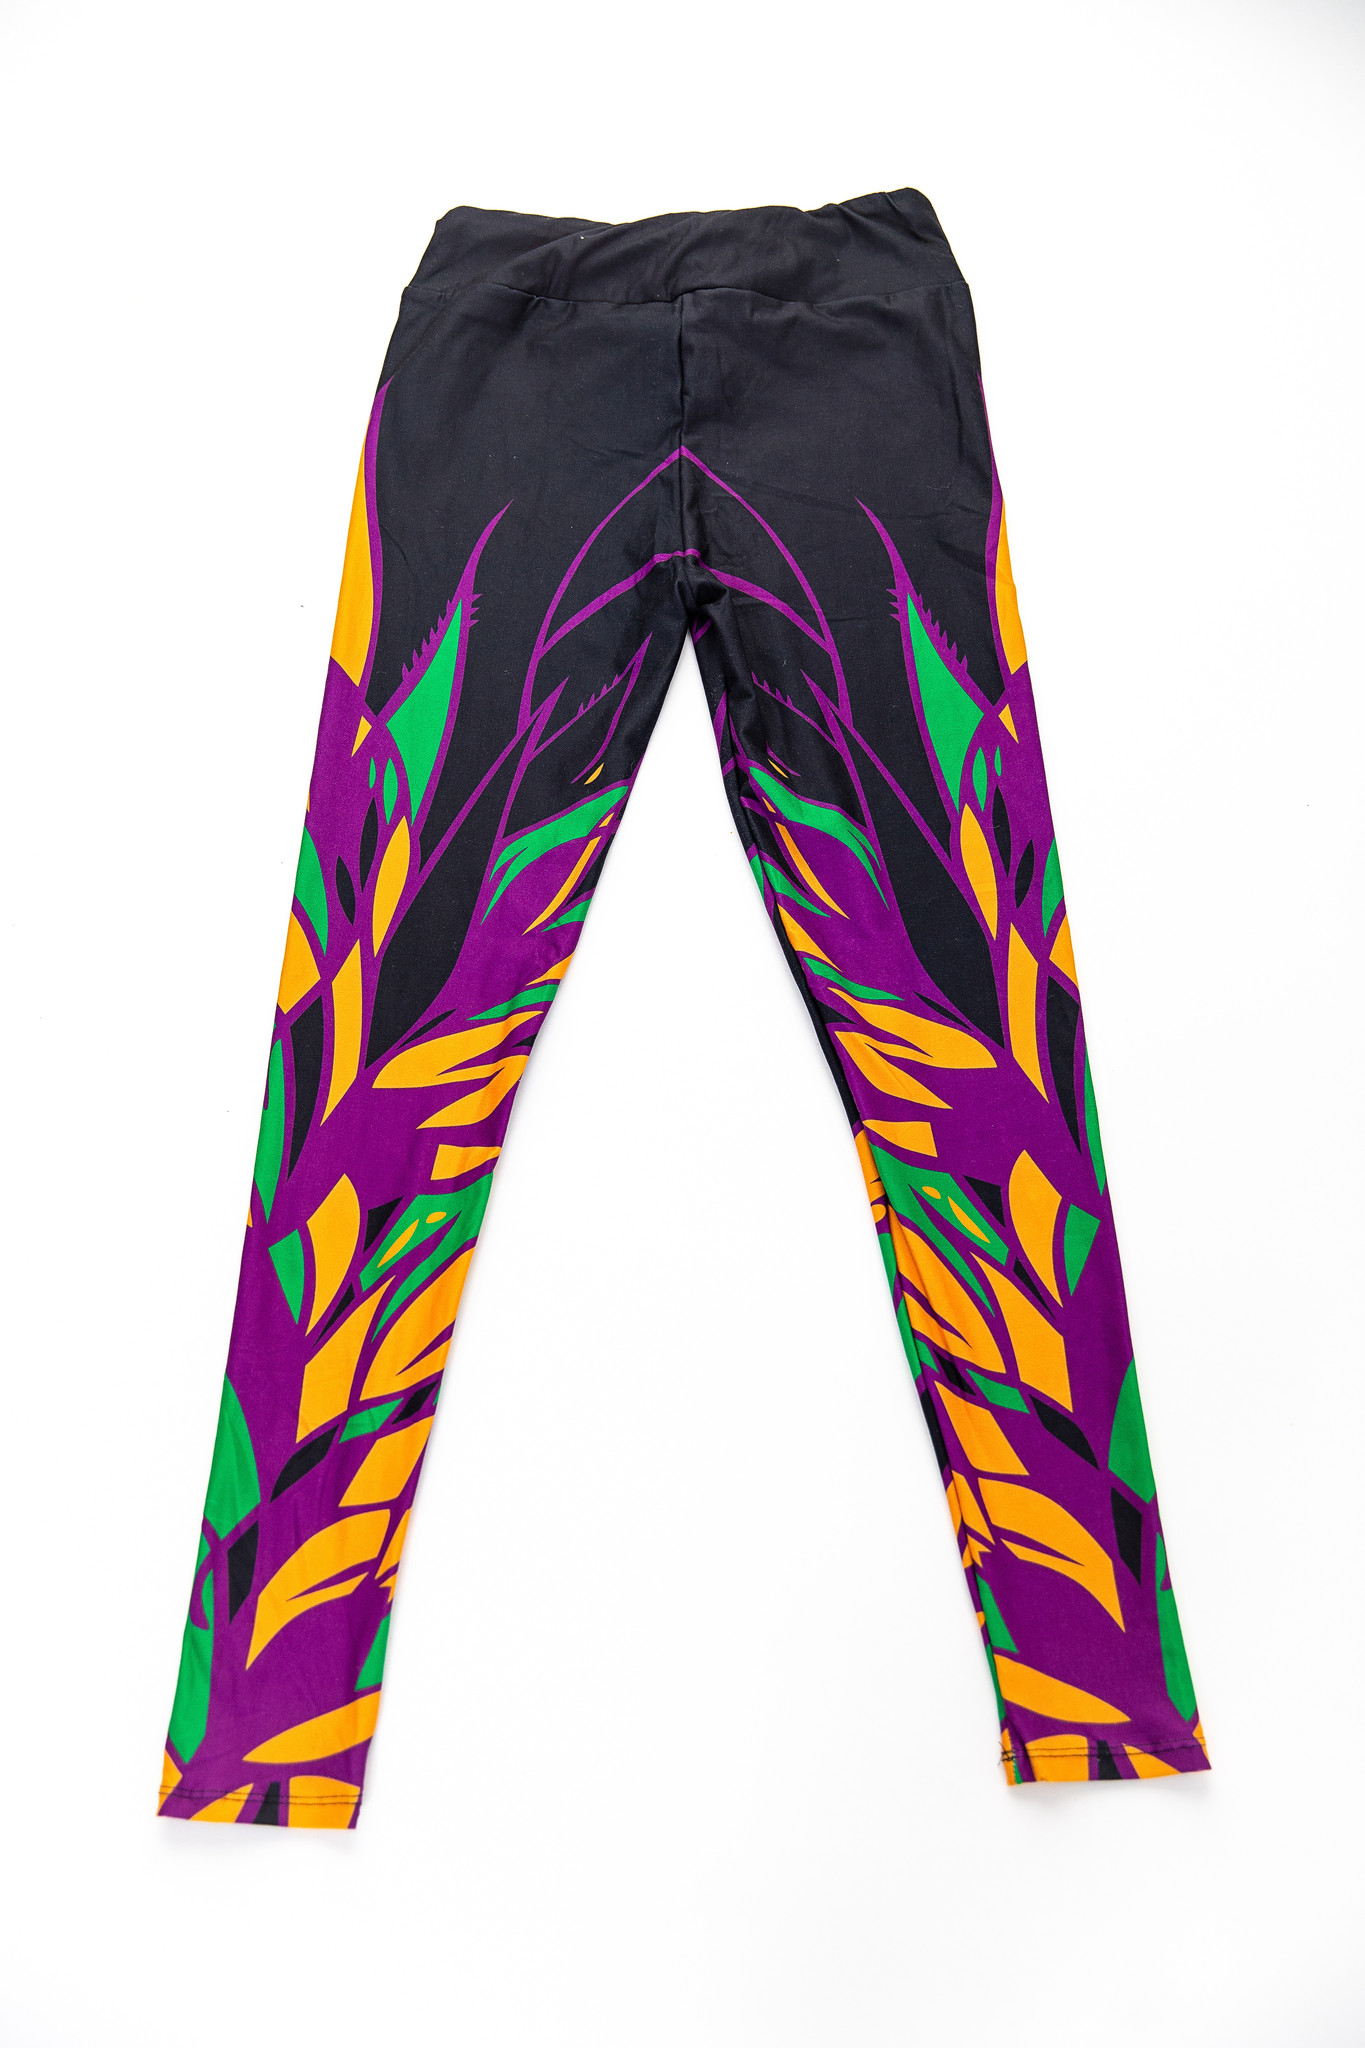 Mardi Gras Wings Leggings